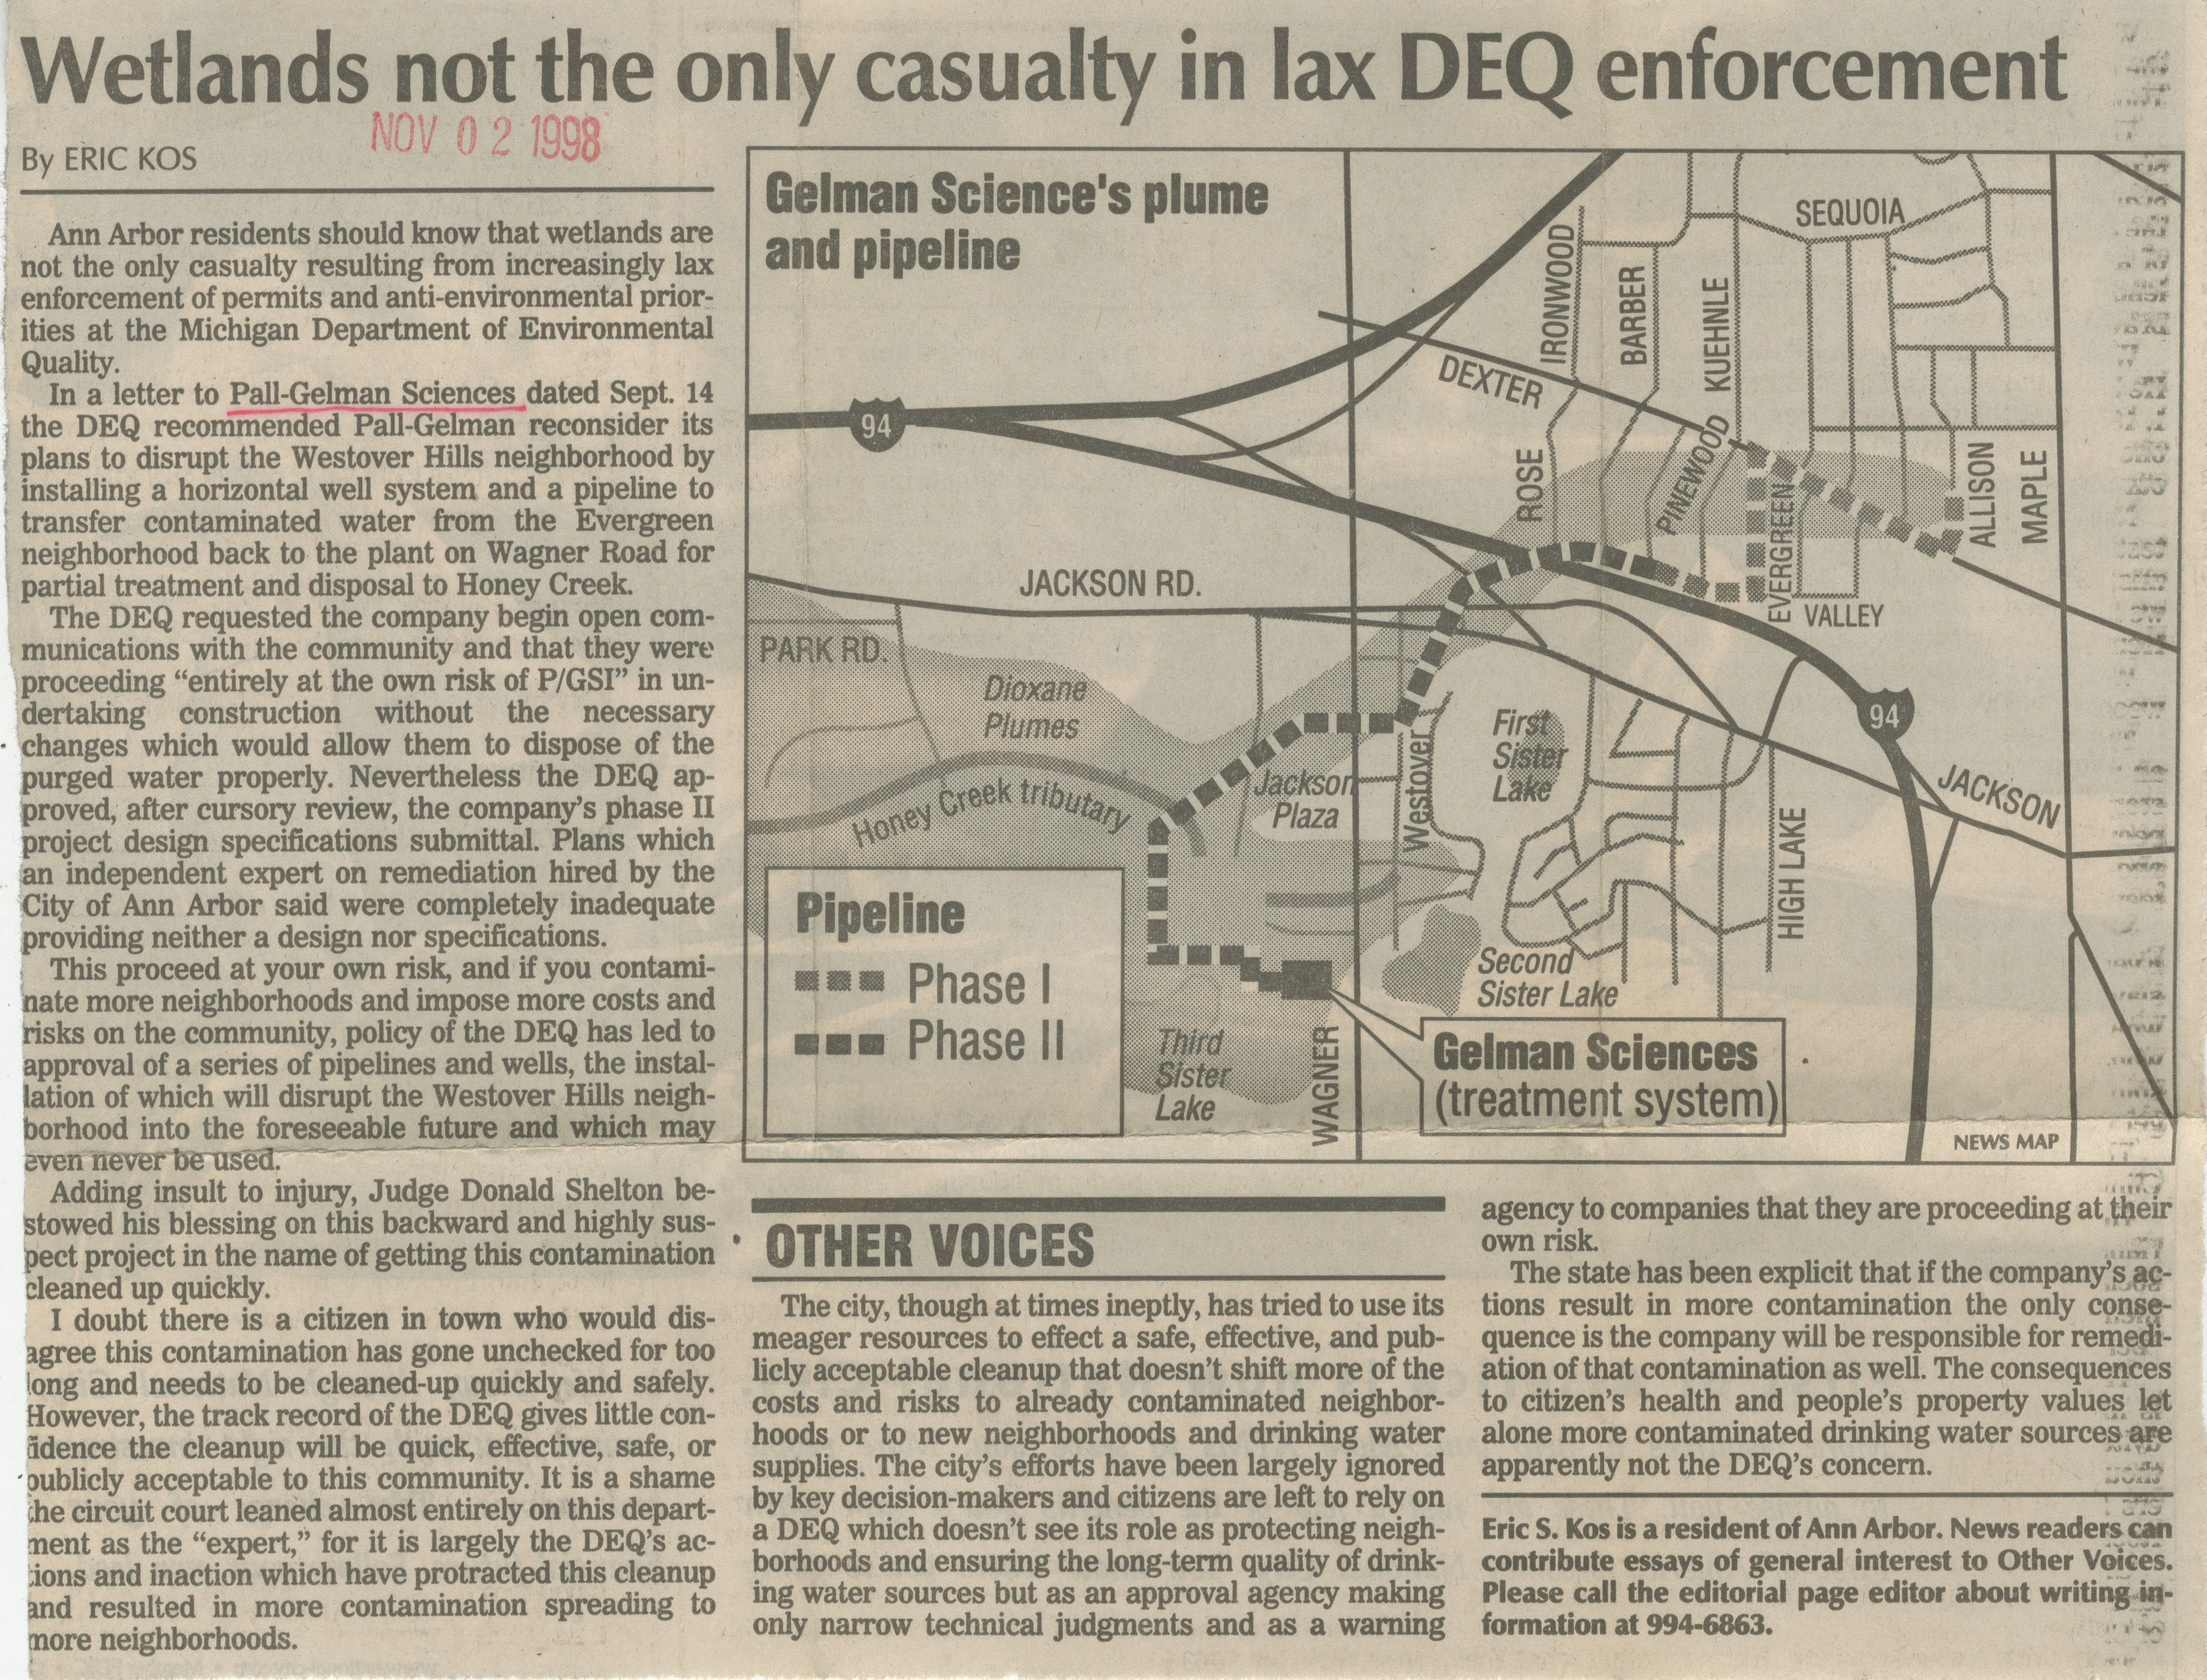 Wetlands Not the Only Casualty in Lax DEQ Enforcement image